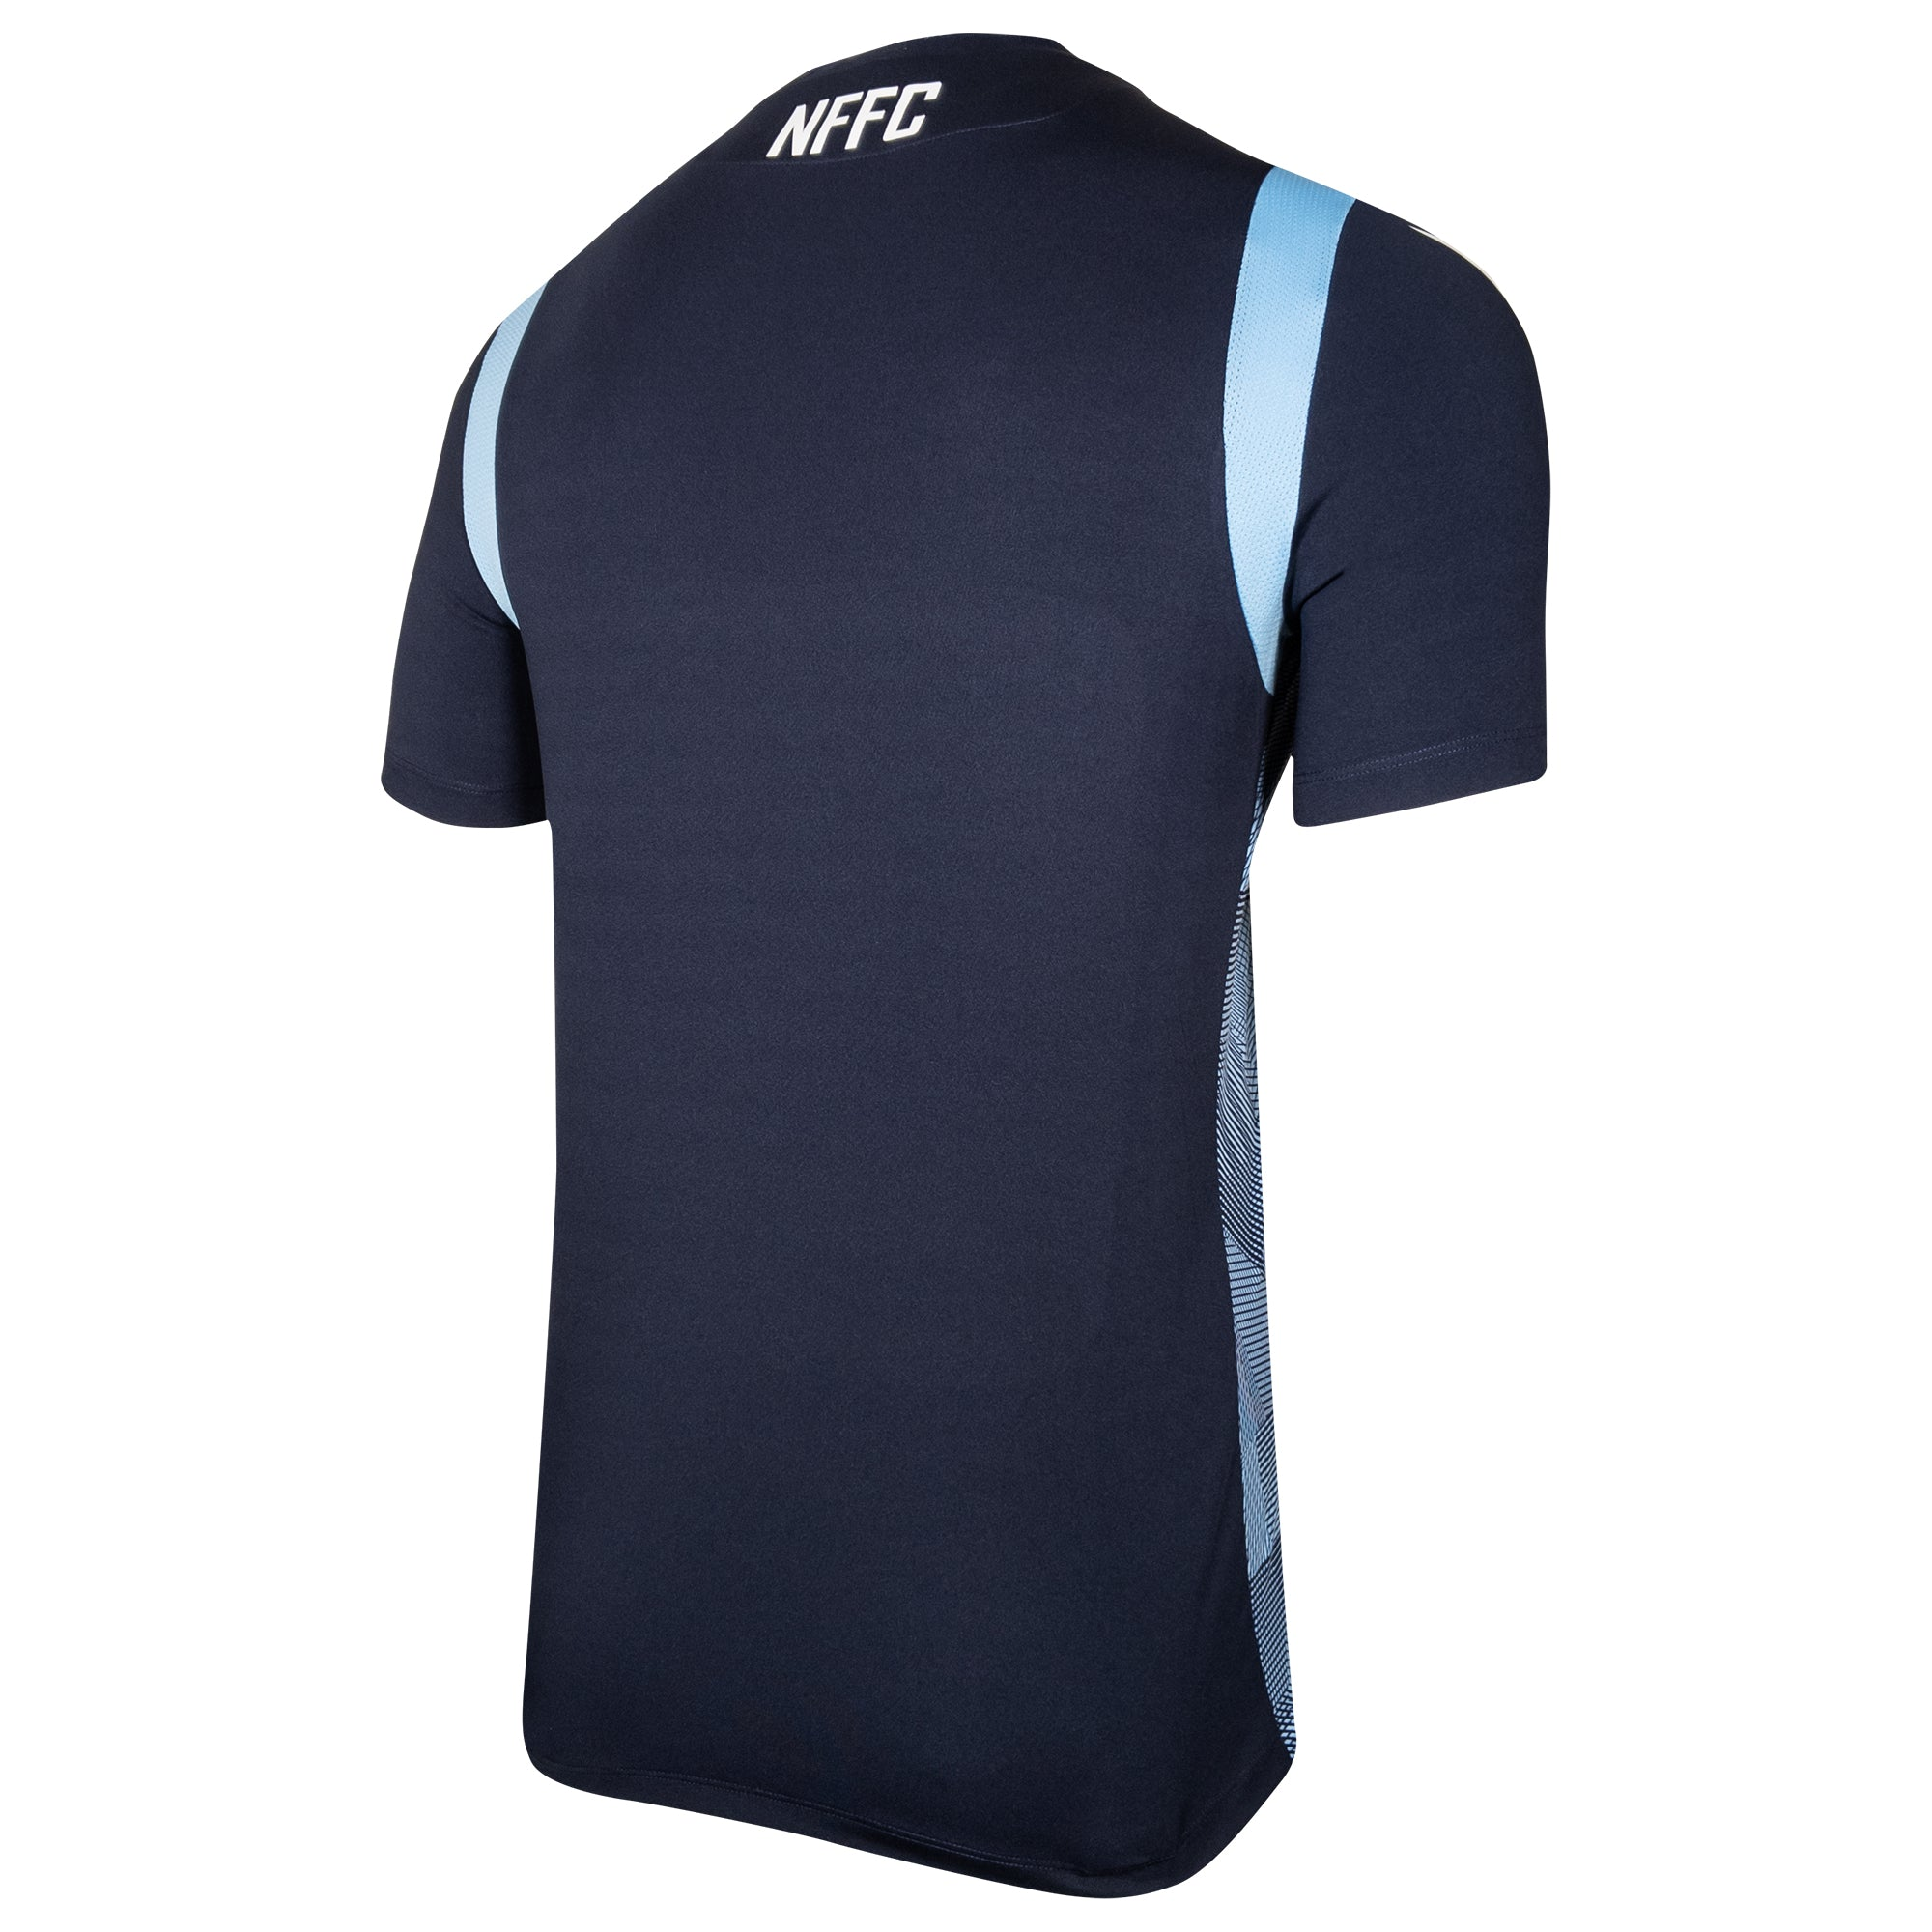 NFFC Junior Blue Nottingham Jersey